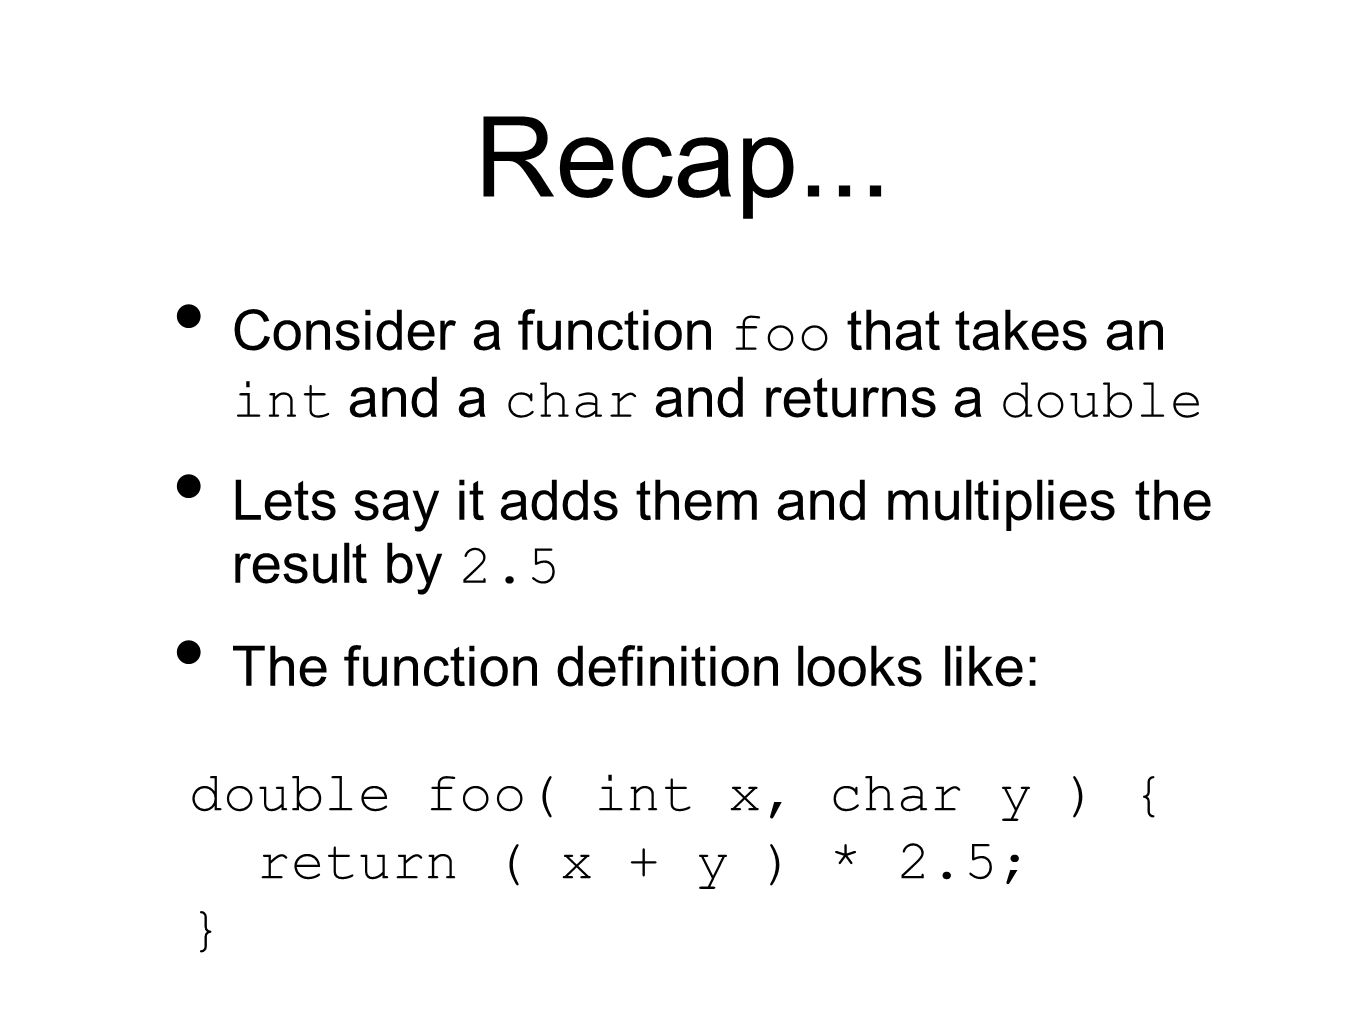 Recap... Consider a function foo that takes an int and a char and returns a double Lets say it adds them and multiplies the result by 2.5 The function